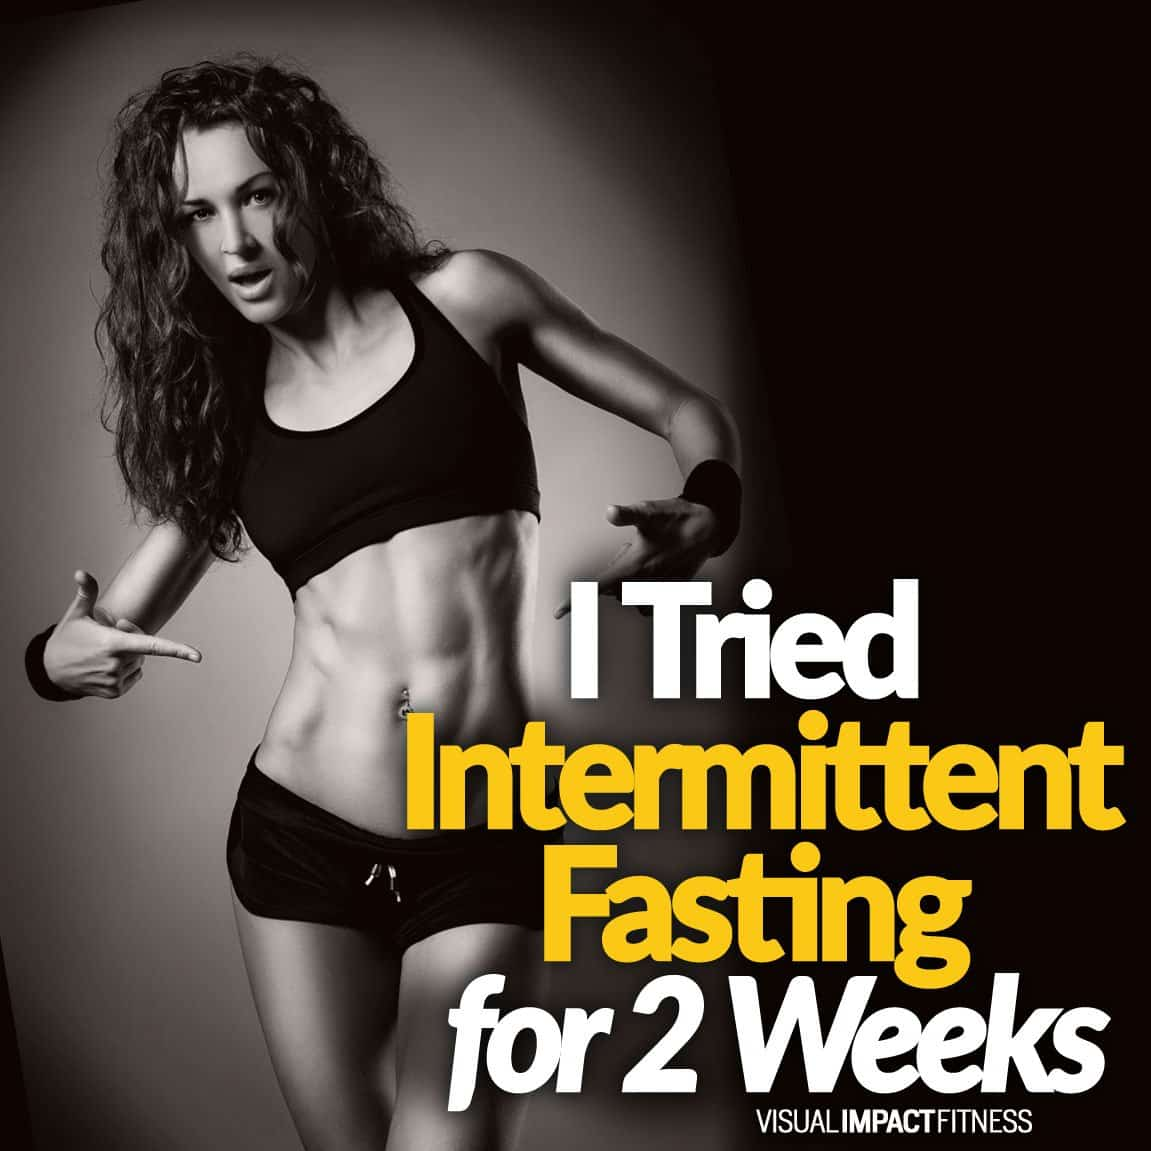 I Tried Intermittent Fasting for 2 Weeks